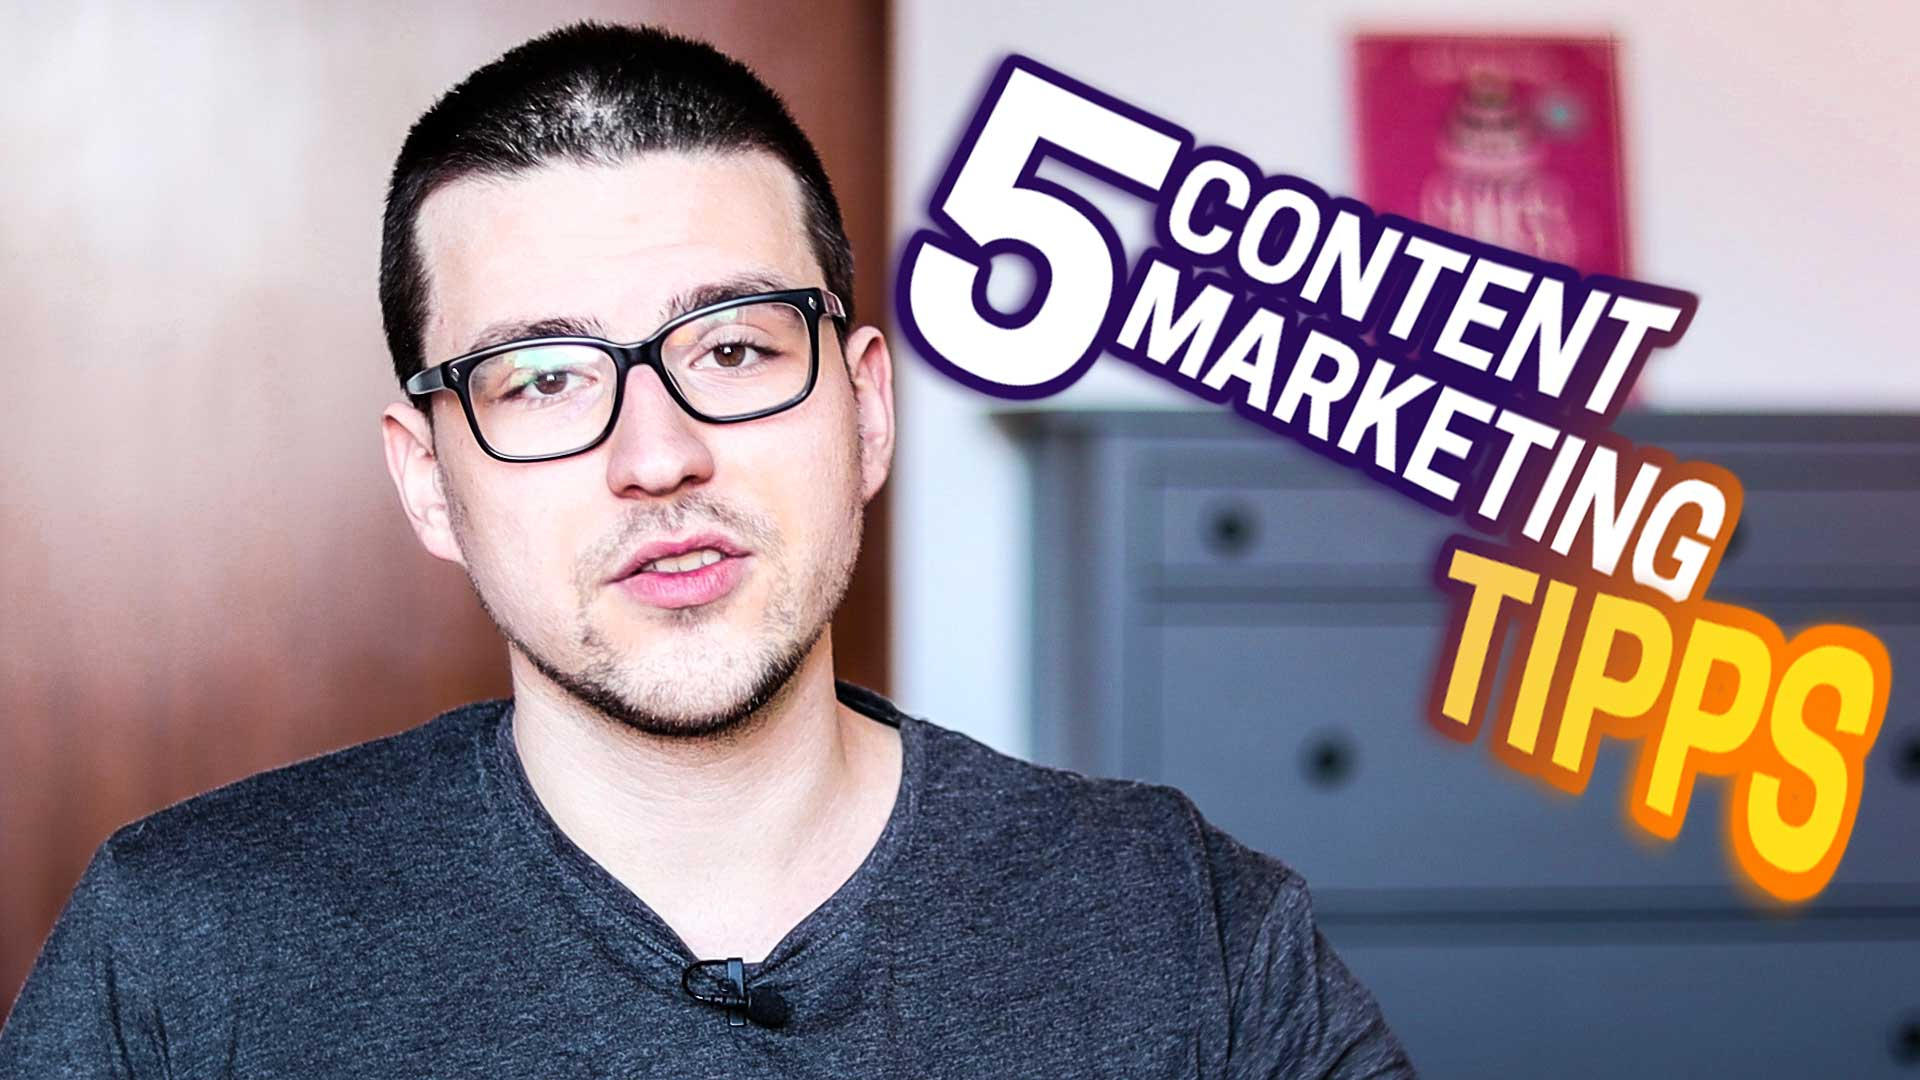 Top 5 Content Marketing Tipps